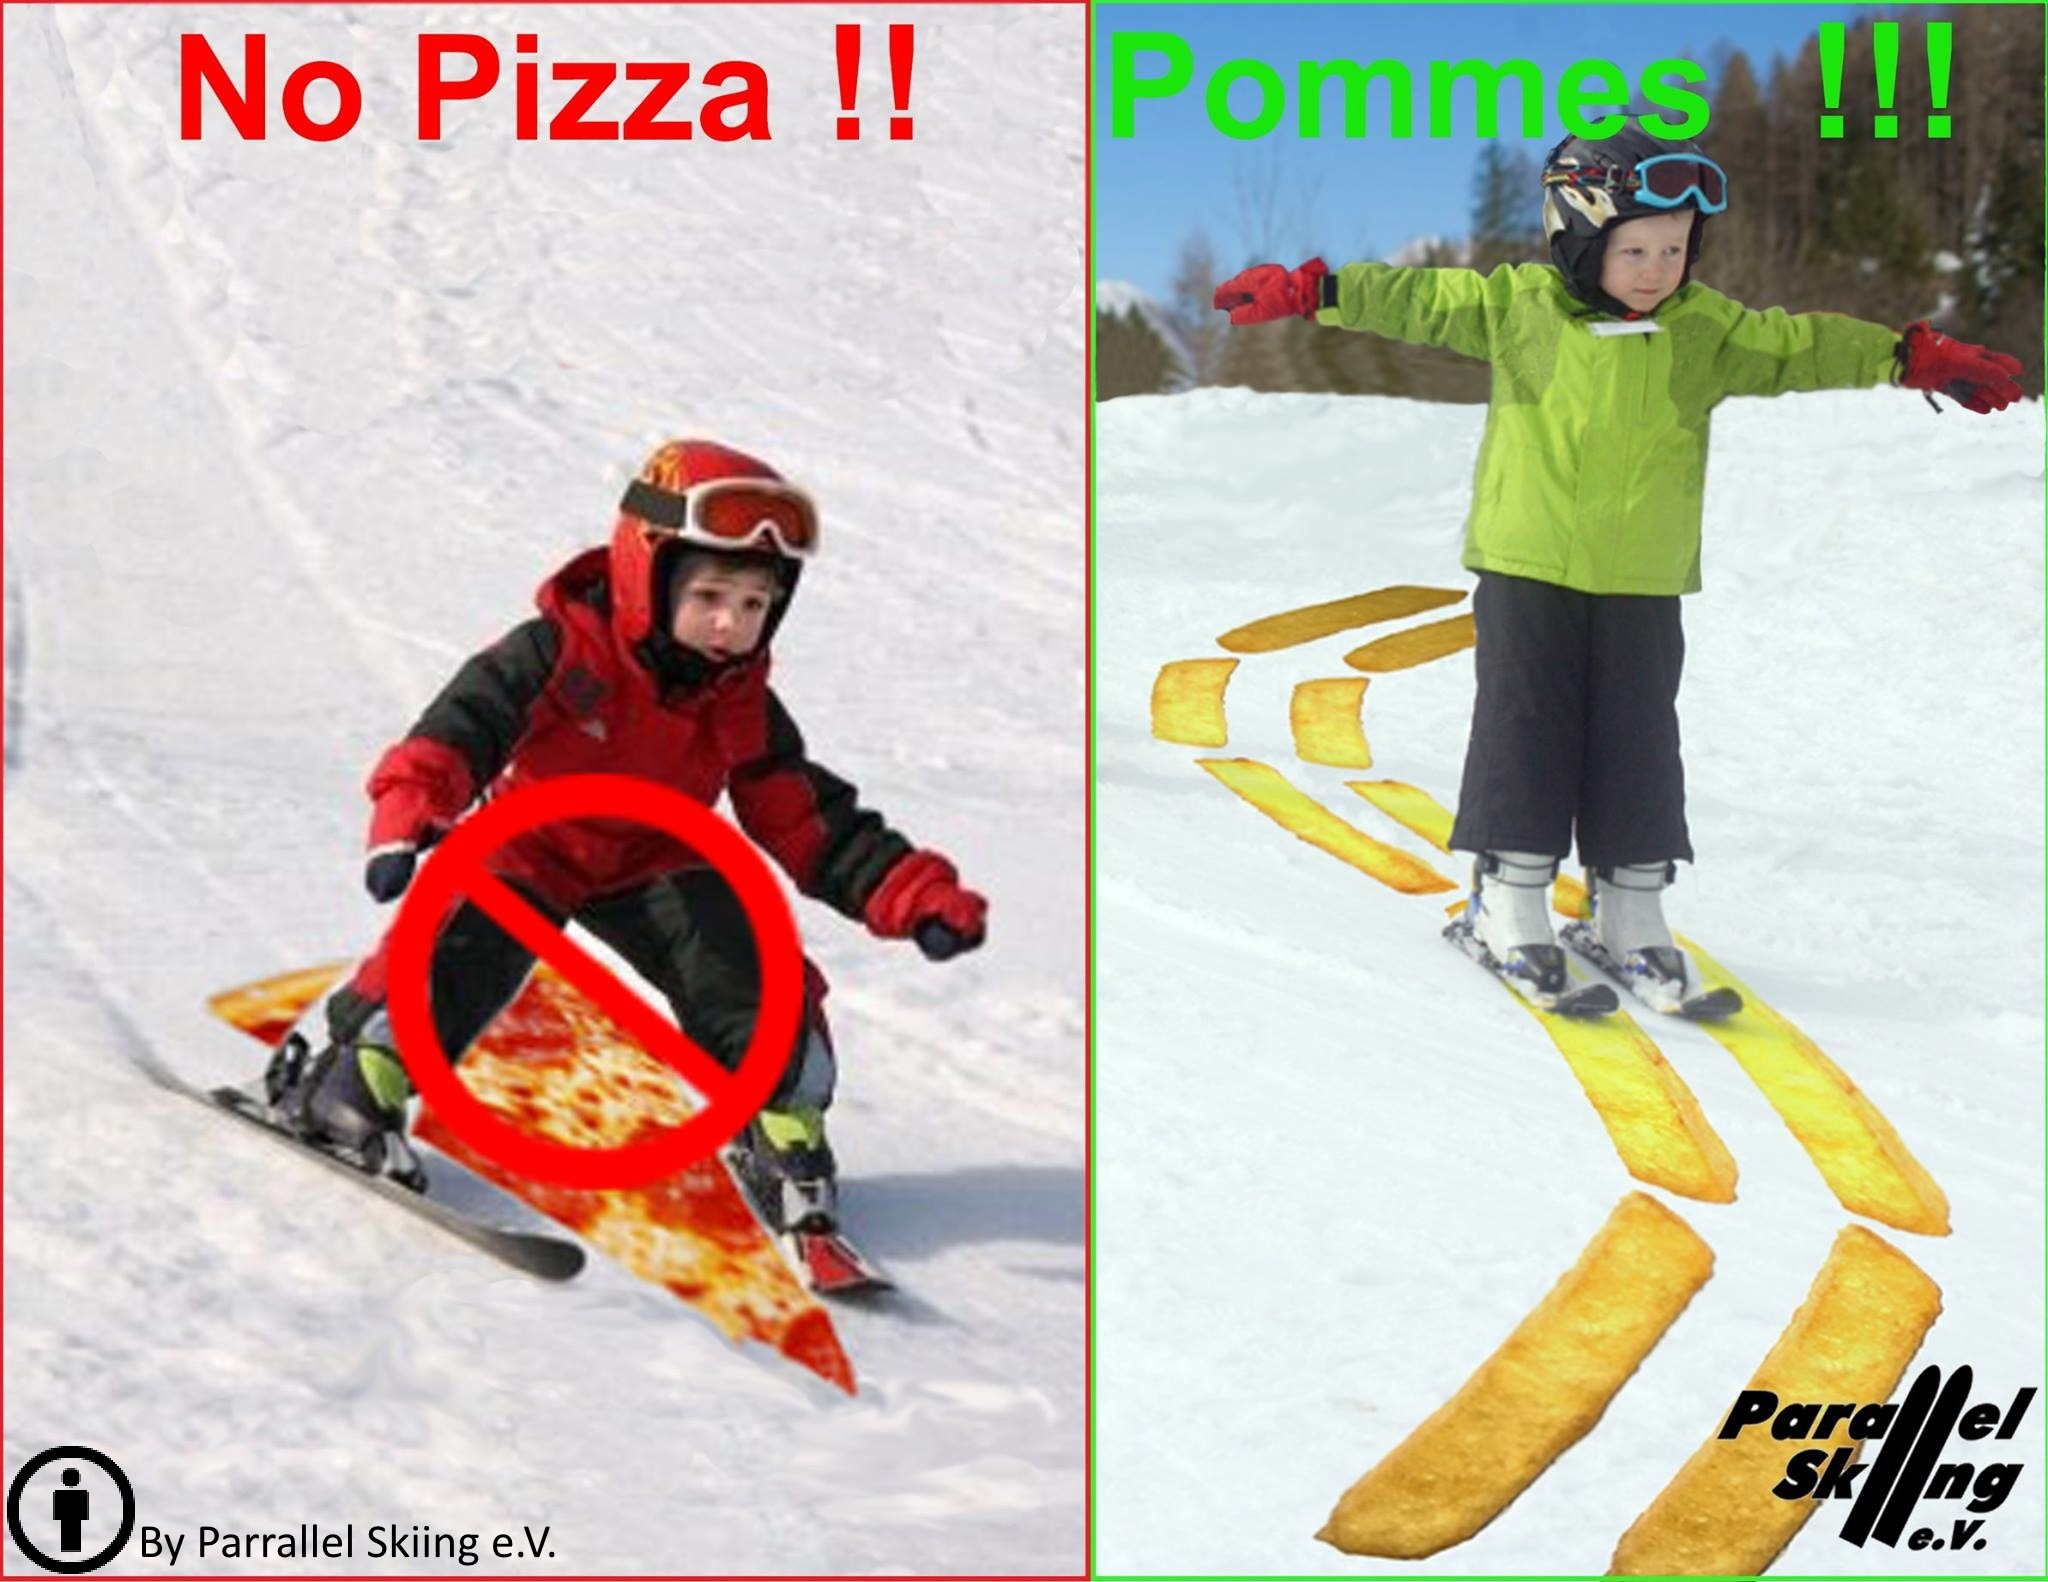 Kid making pizza wedge with skis; Kid making parallel chips with skis